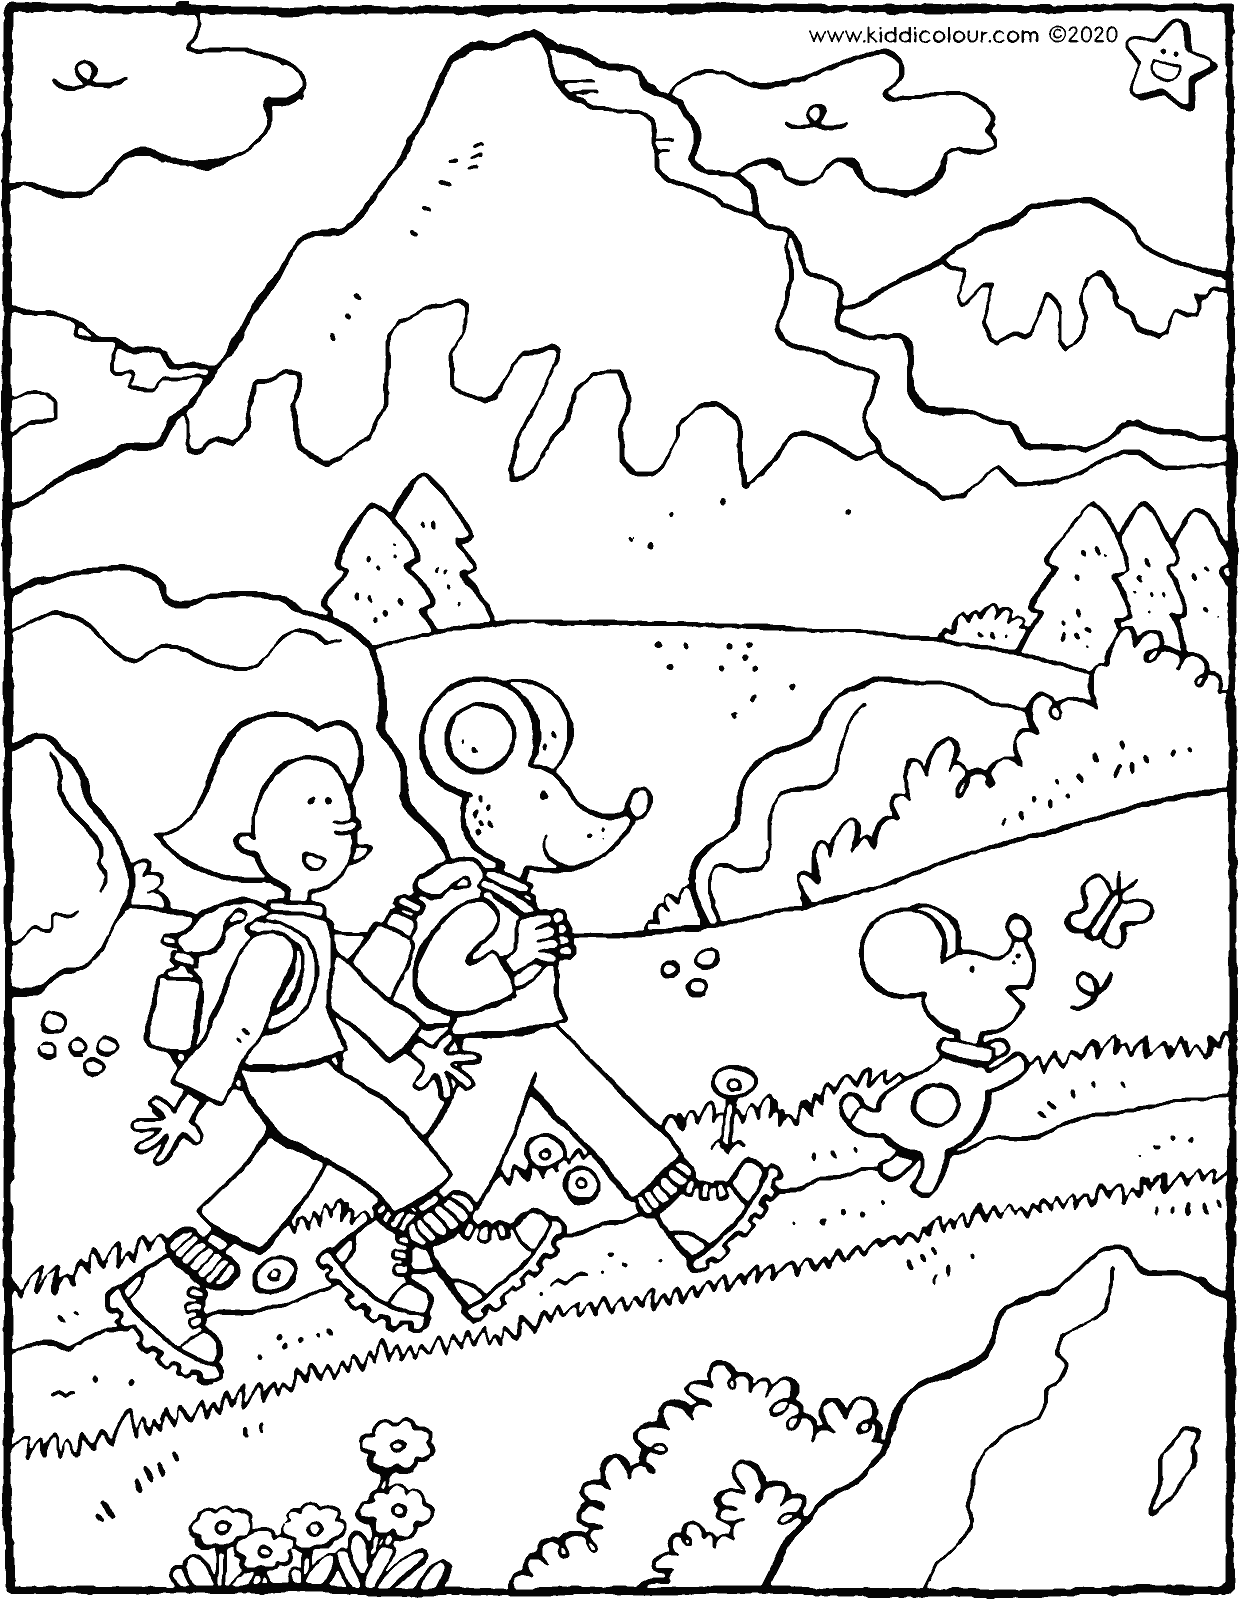 Emma and Thomas walking in the mountains colouring page drawing picture 01V